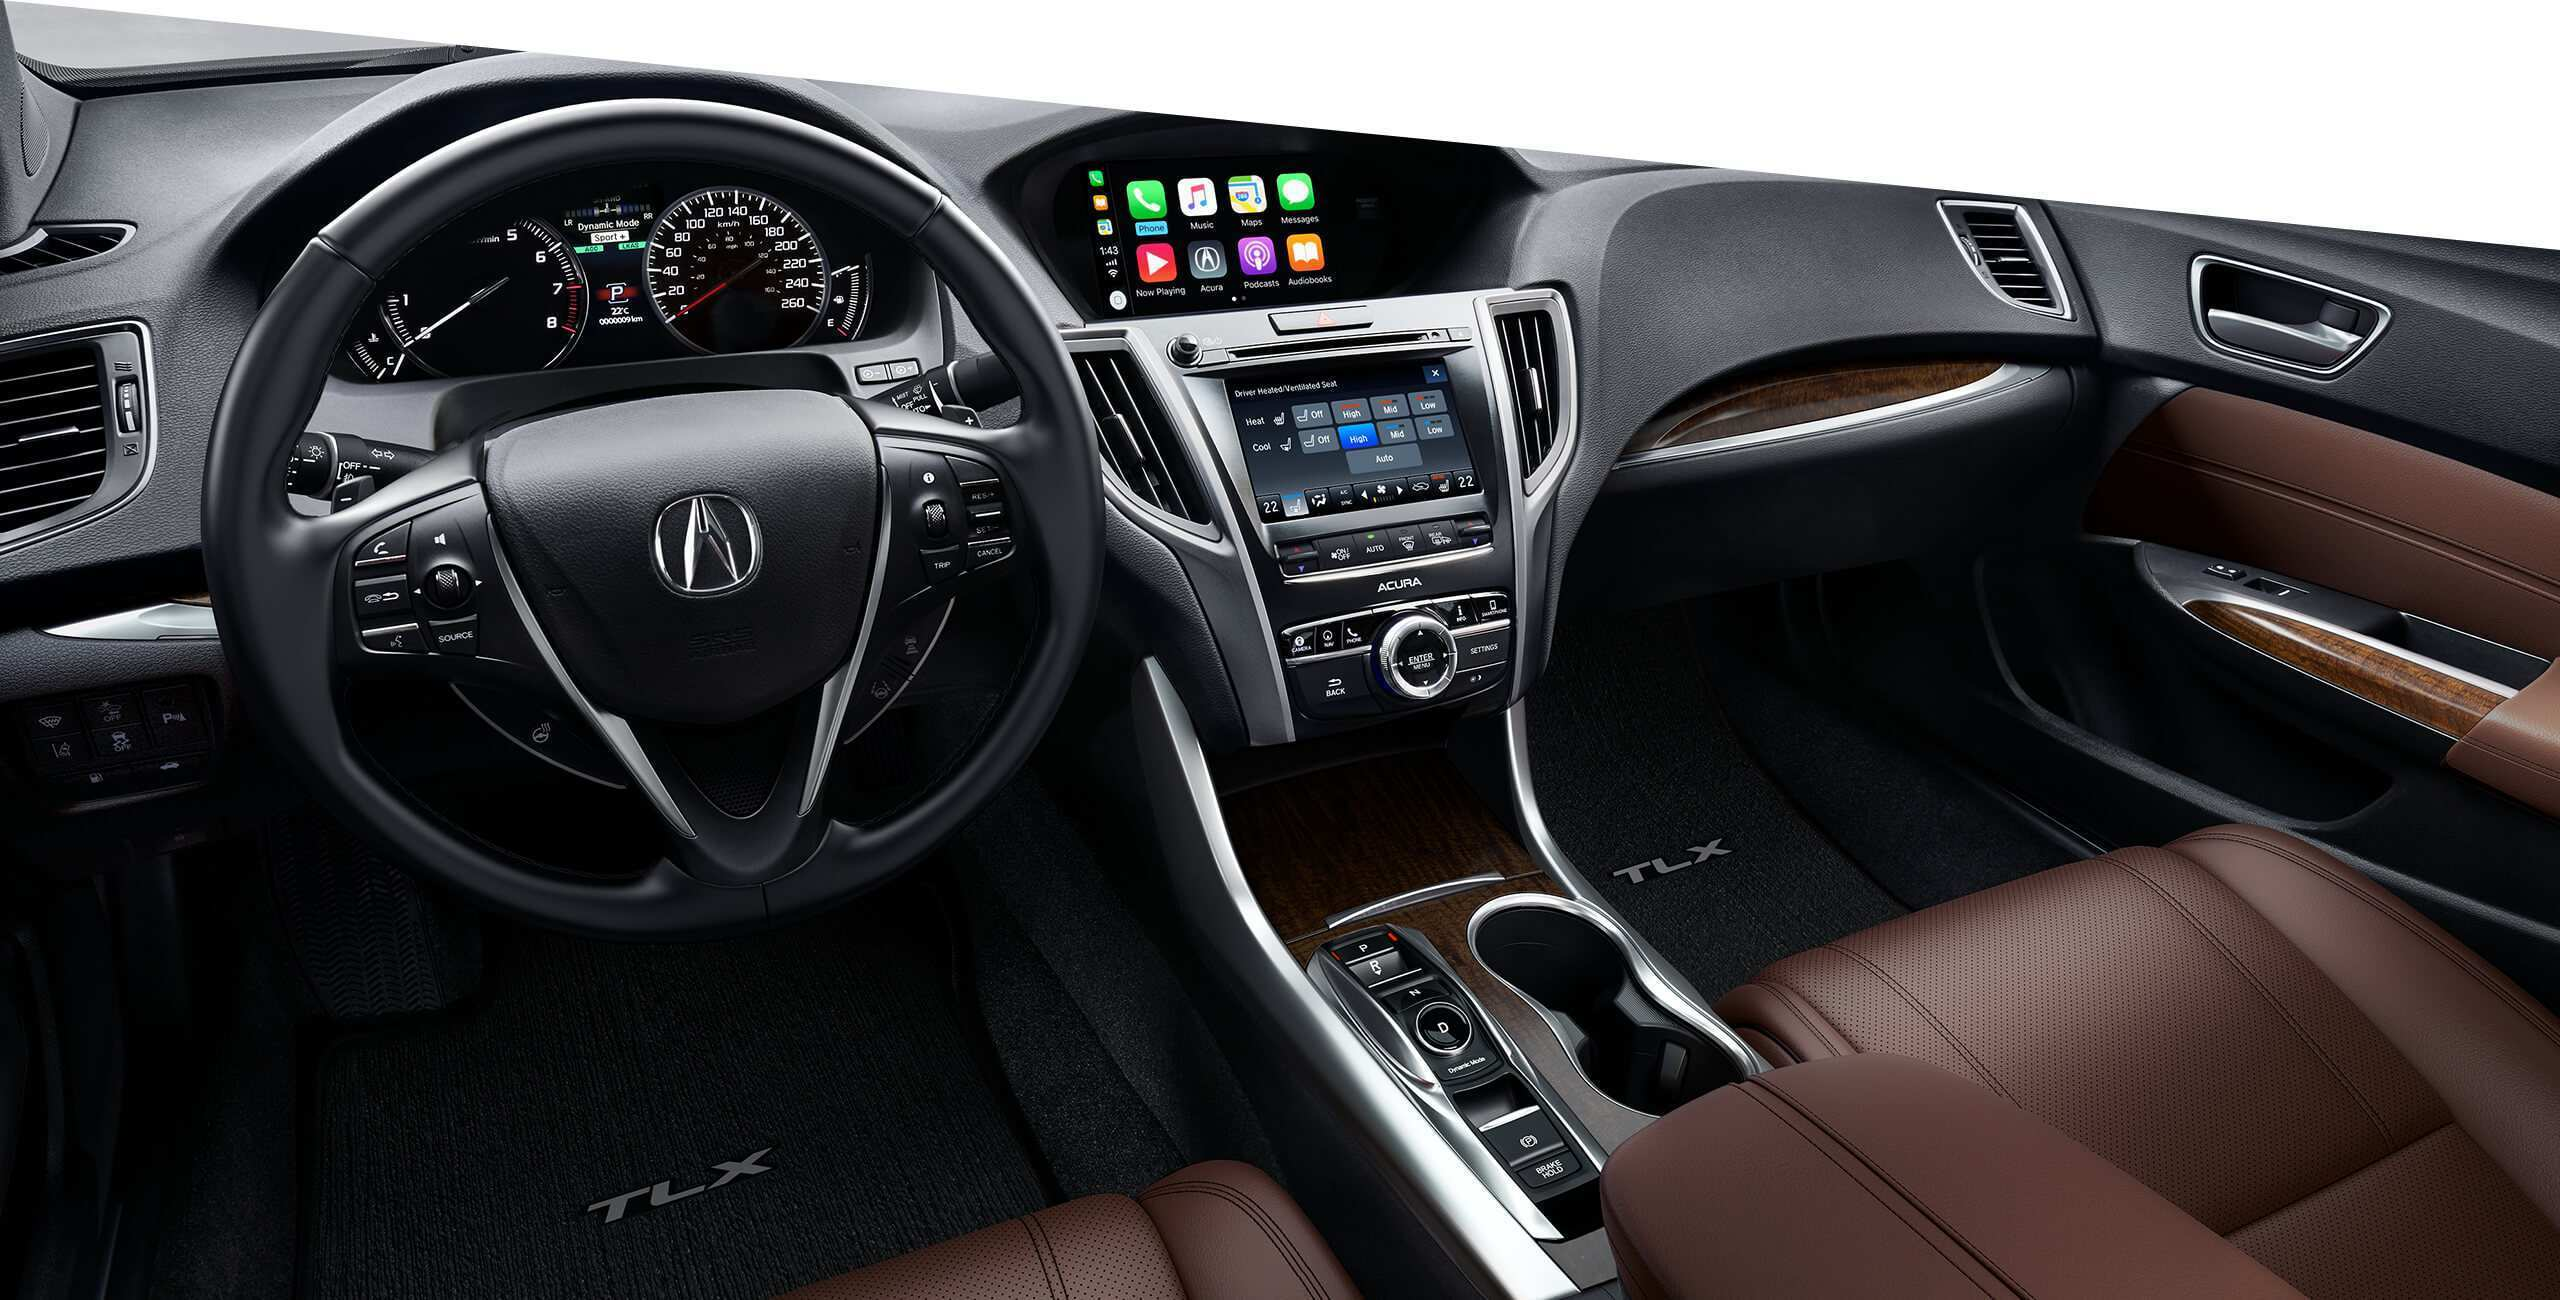 77 Best Review Acura Mdx 2020 Interior Prices with Acura Mdx 2020 Interior